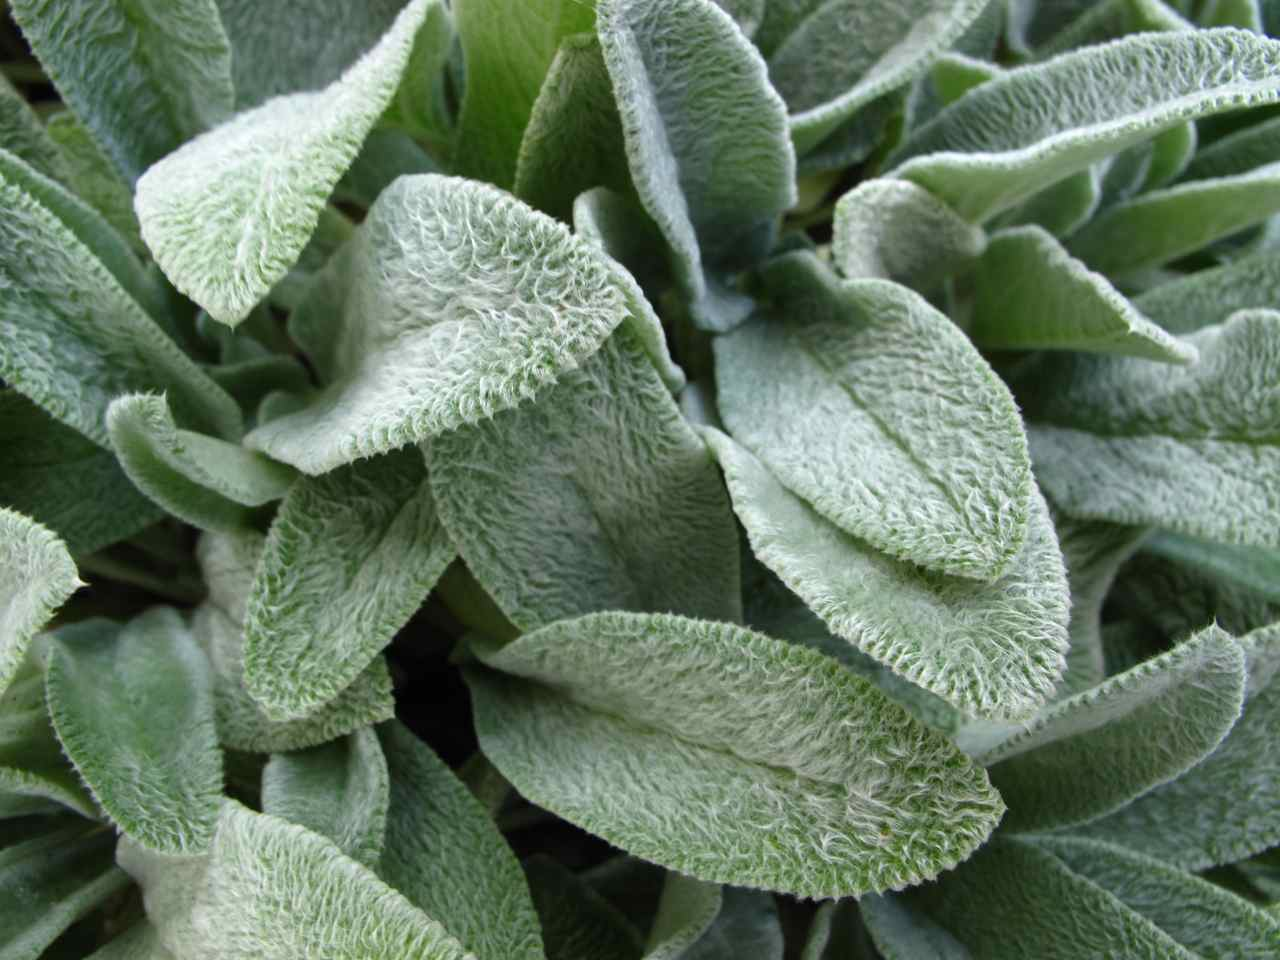 Stachys byzantina Photo: pbmgarden.wordpress.com